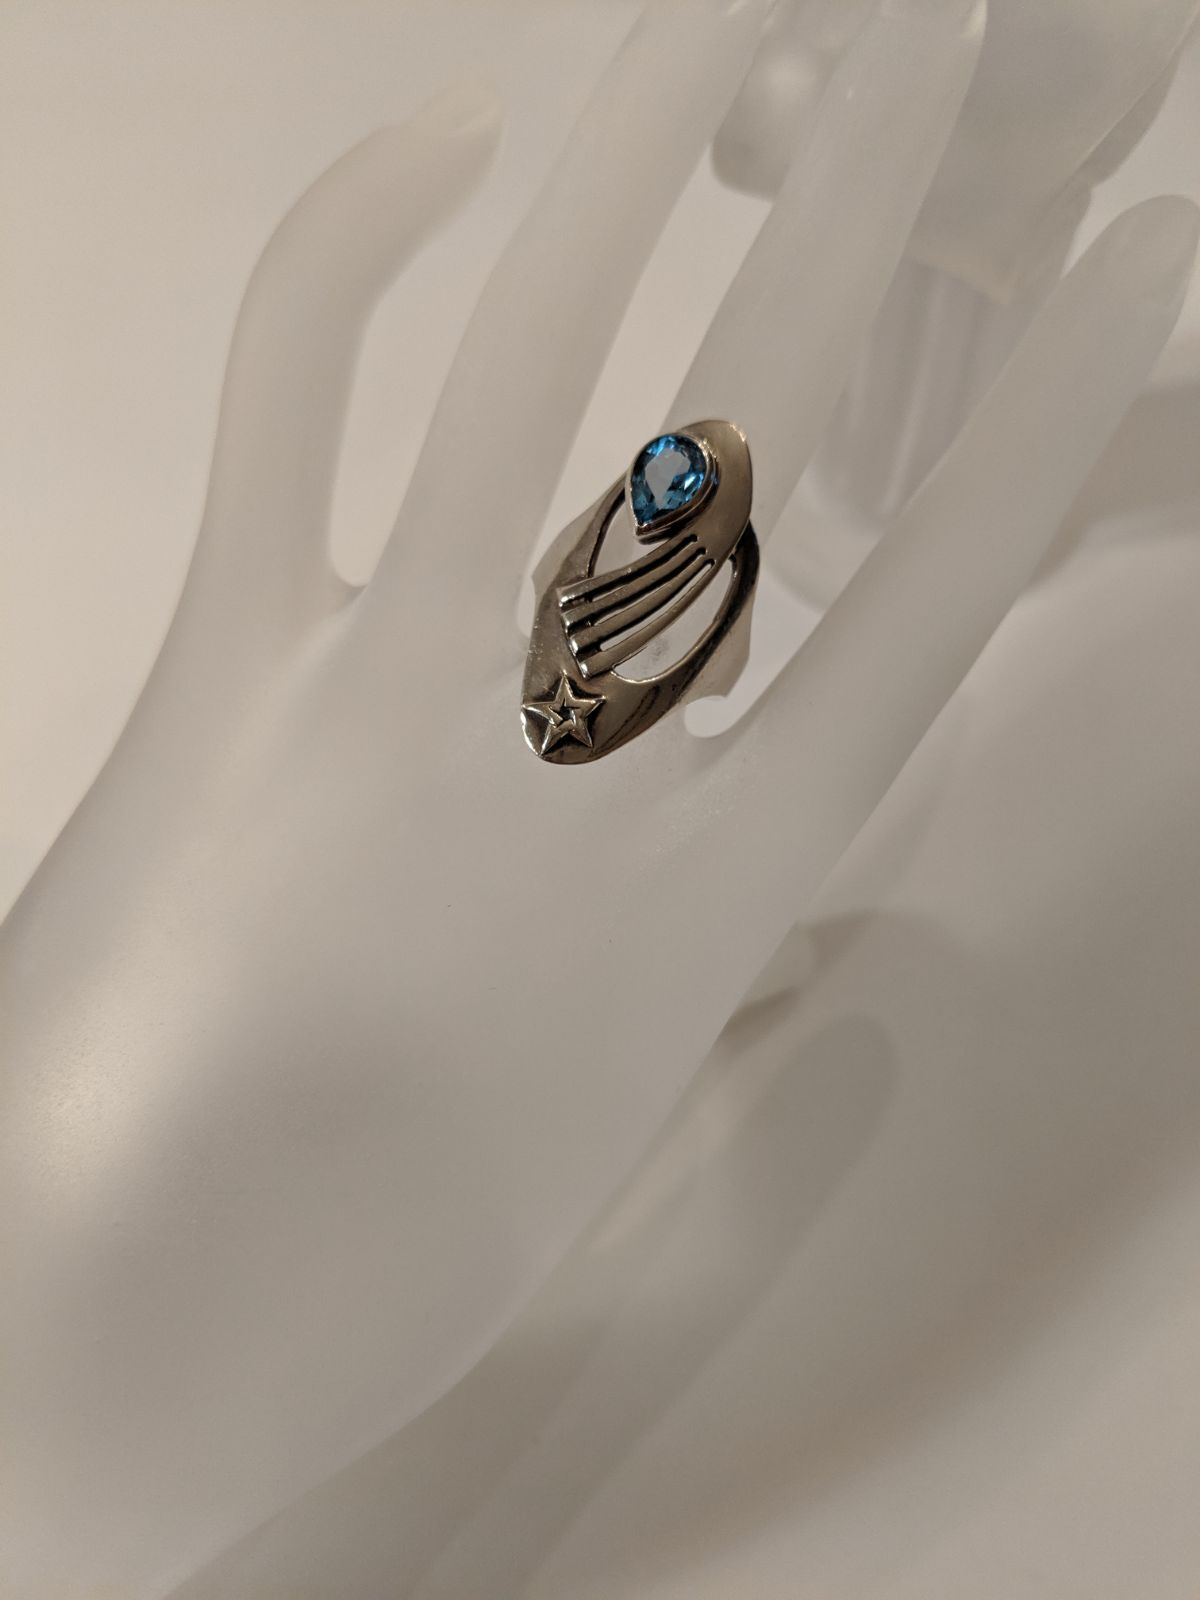 Vintage 925 Star Blue Topaz Ring This Ring Is Made Of Solid 925 Silver With Blue Topaz And A Star Design Really Pretty Rin Blue Topaz Ring Blue Topaz Topaz